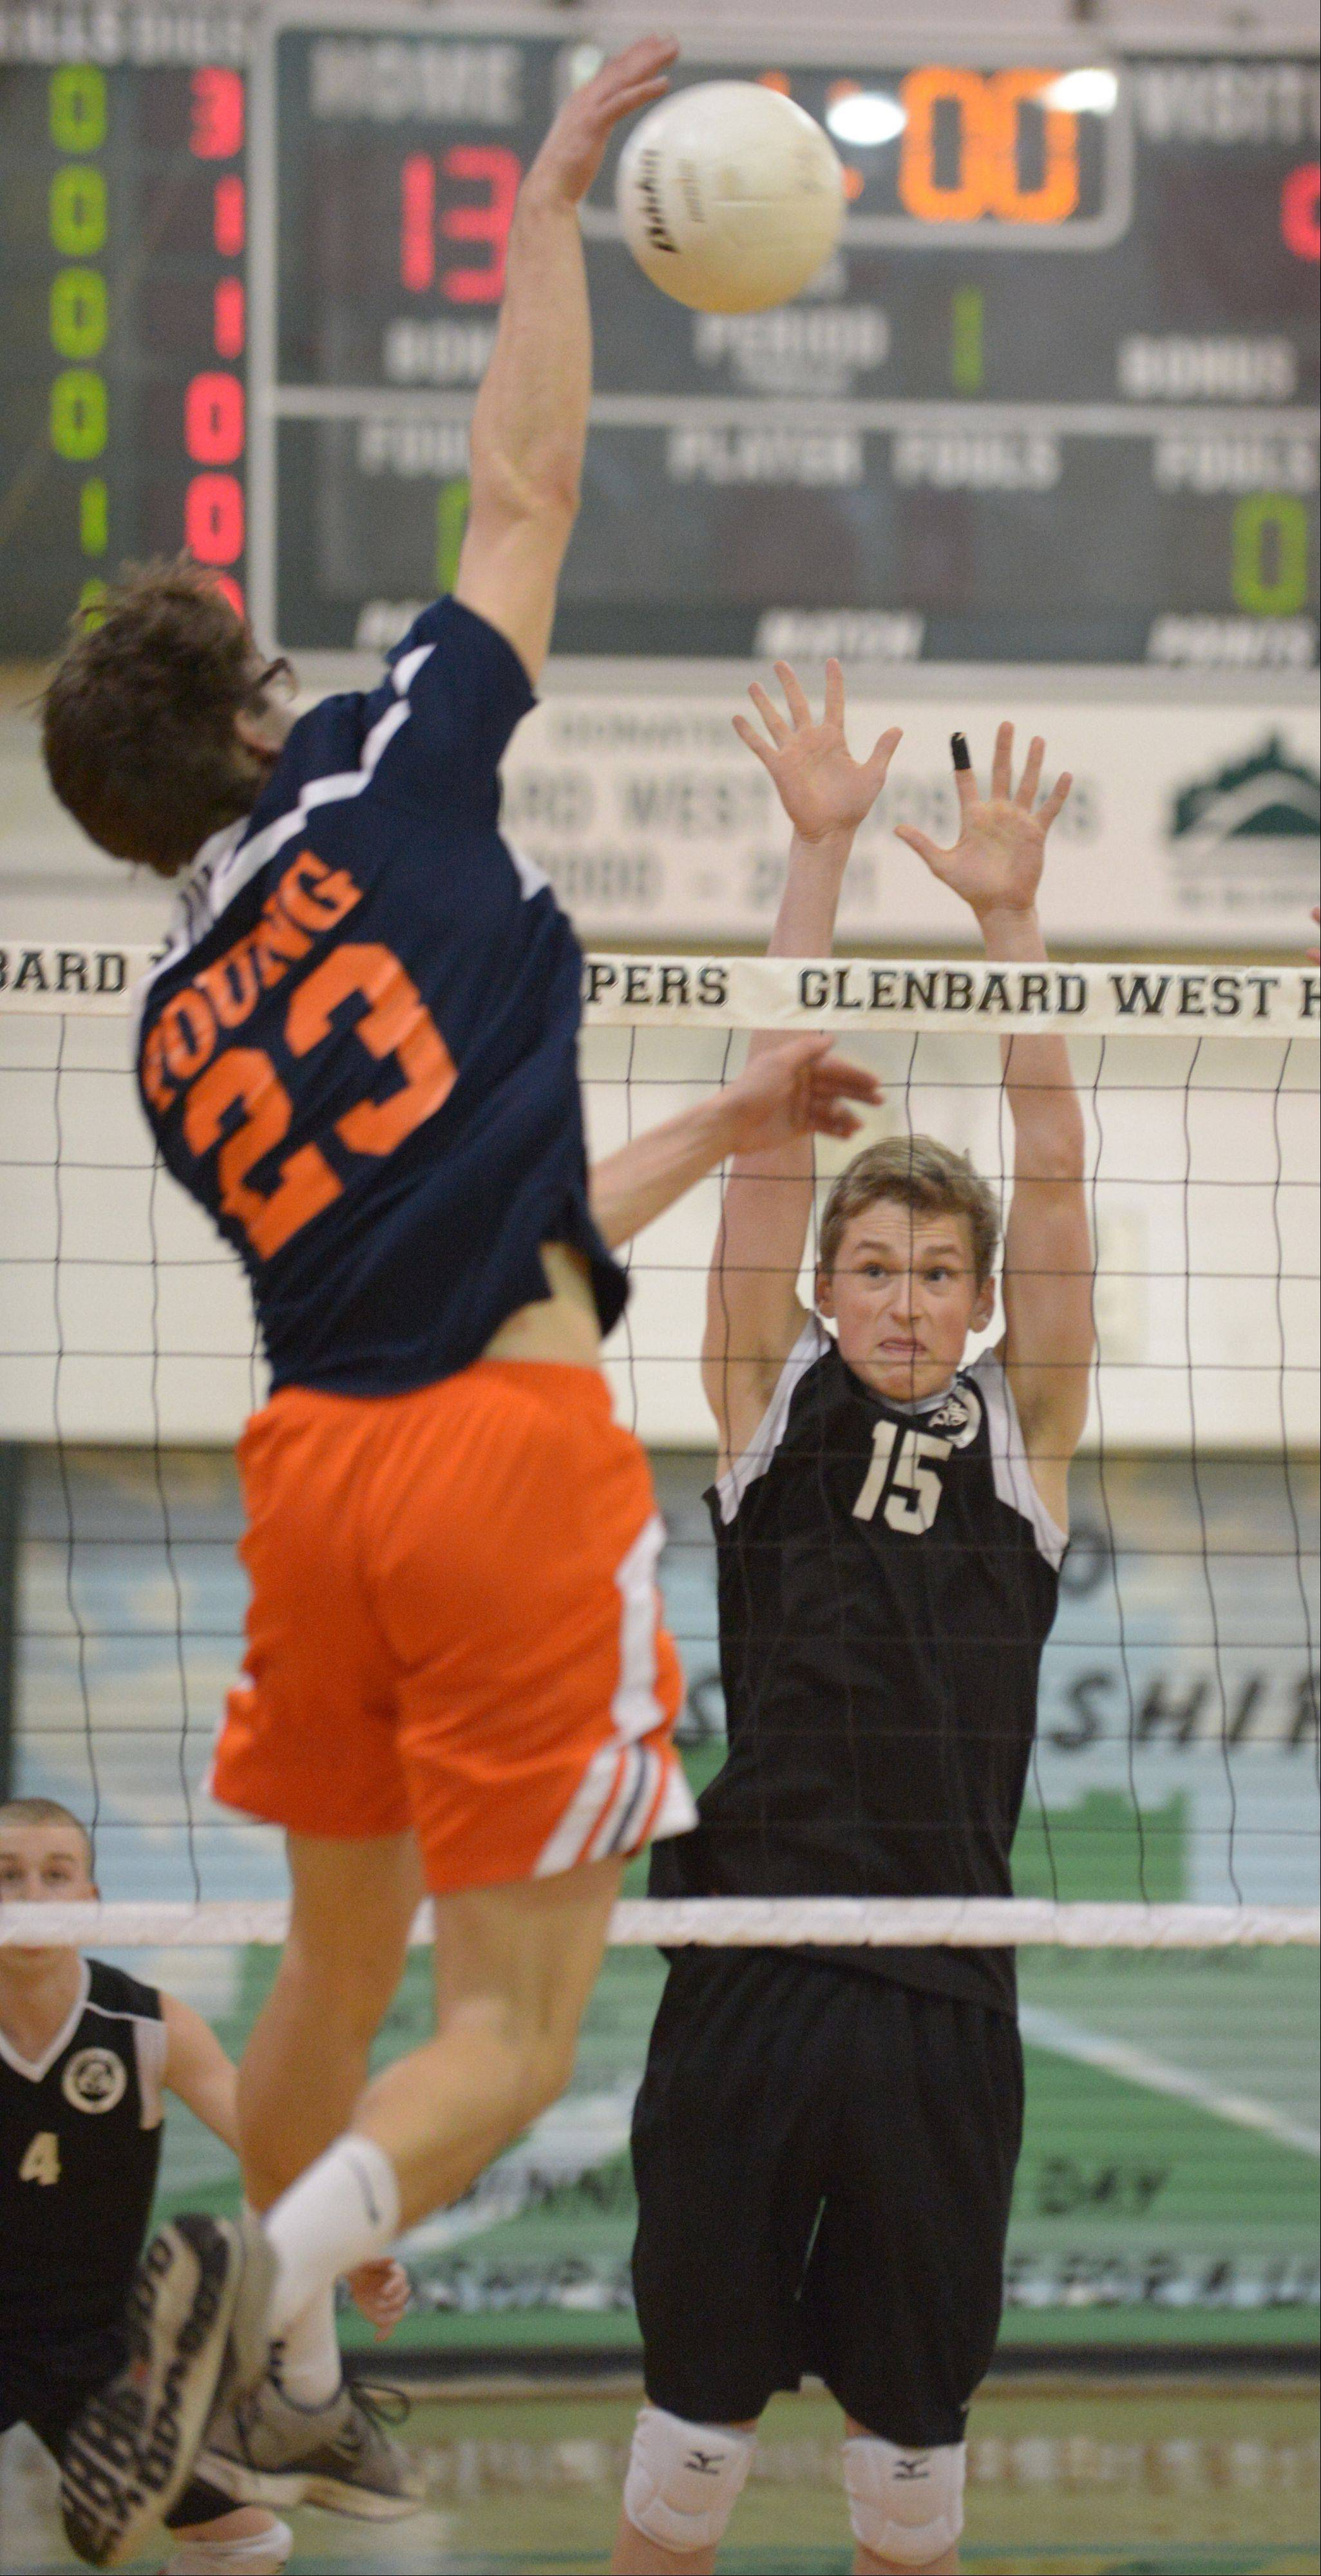 Glenbard West's Jackson Nagle blocks a shot from Whitney Young's Tom Wesolow during Thursday's volleyball game.